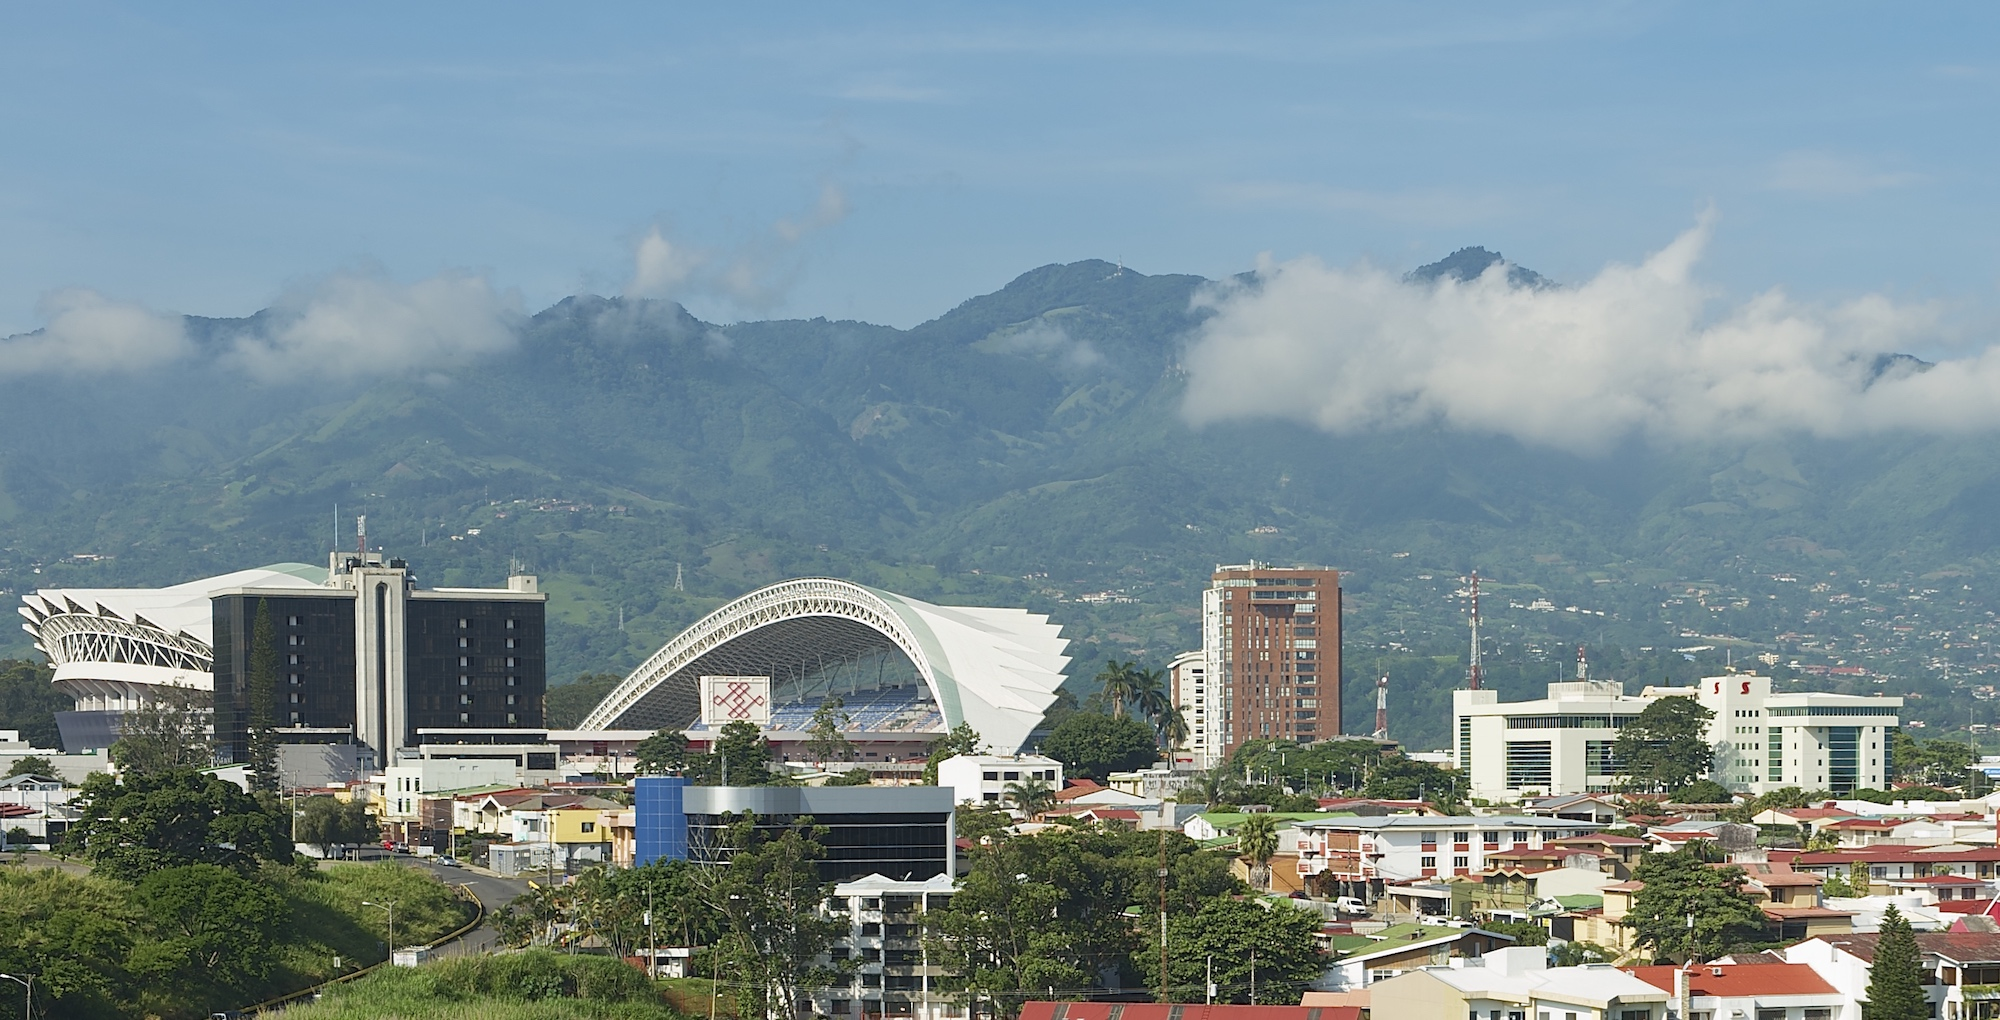 San José, capital of Costa Rica